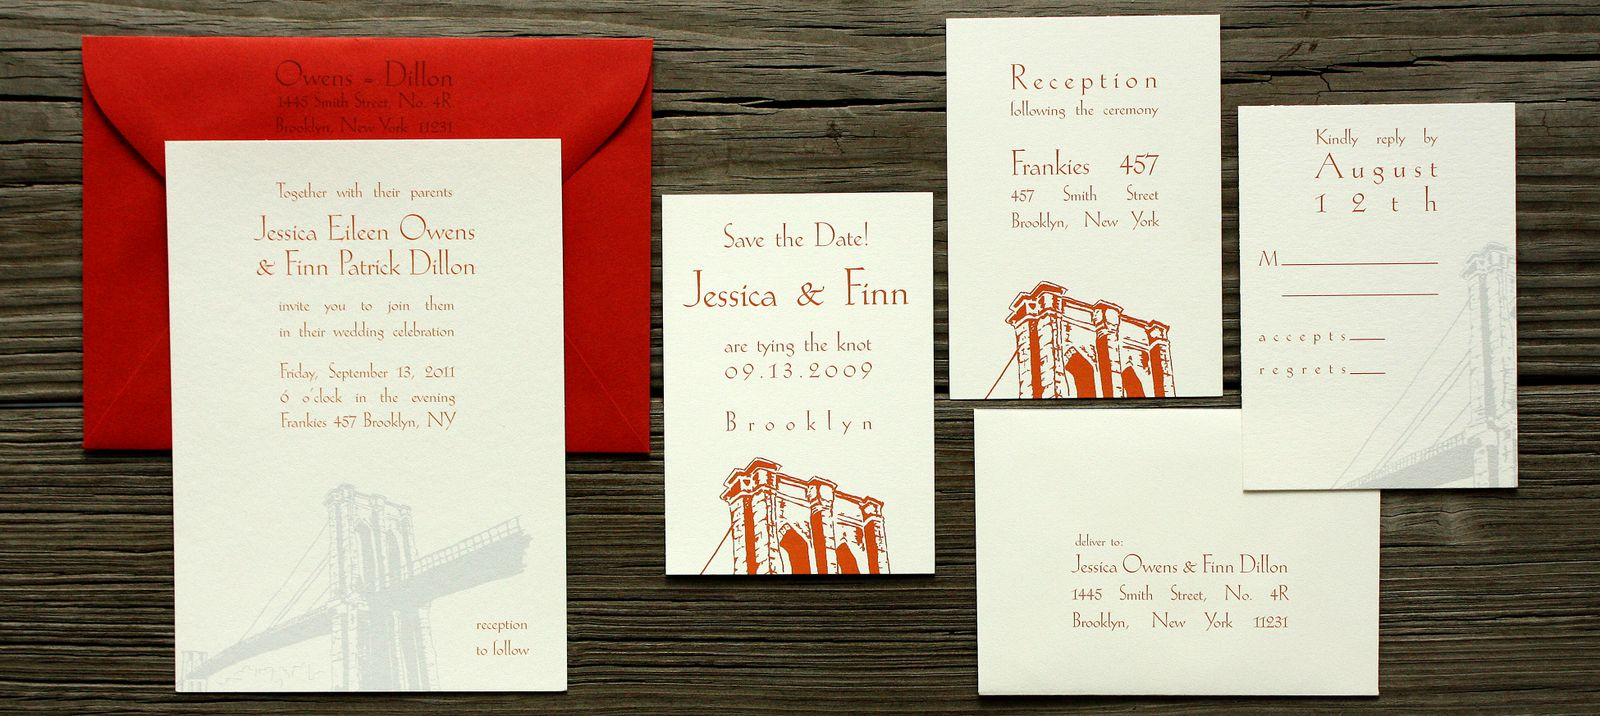 Wedding Invitations Brooklyn Ny | Wedding Ideas